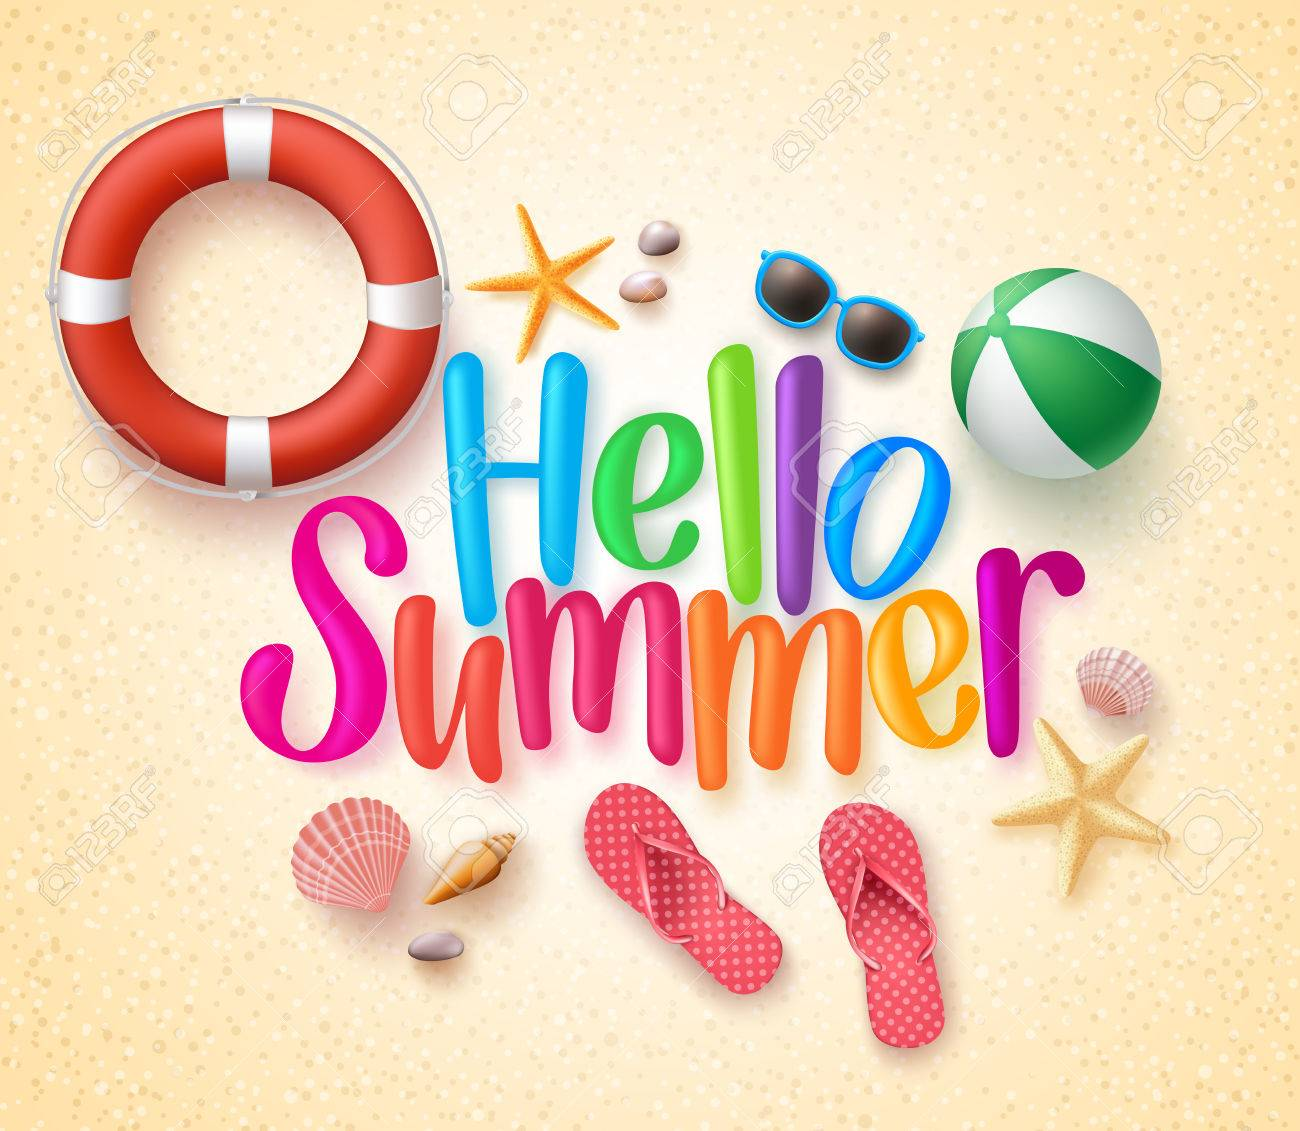 Hello Summer in the Sand Colorful Text and Background with Summer Season Items in the Beach. Illustration - 53830767